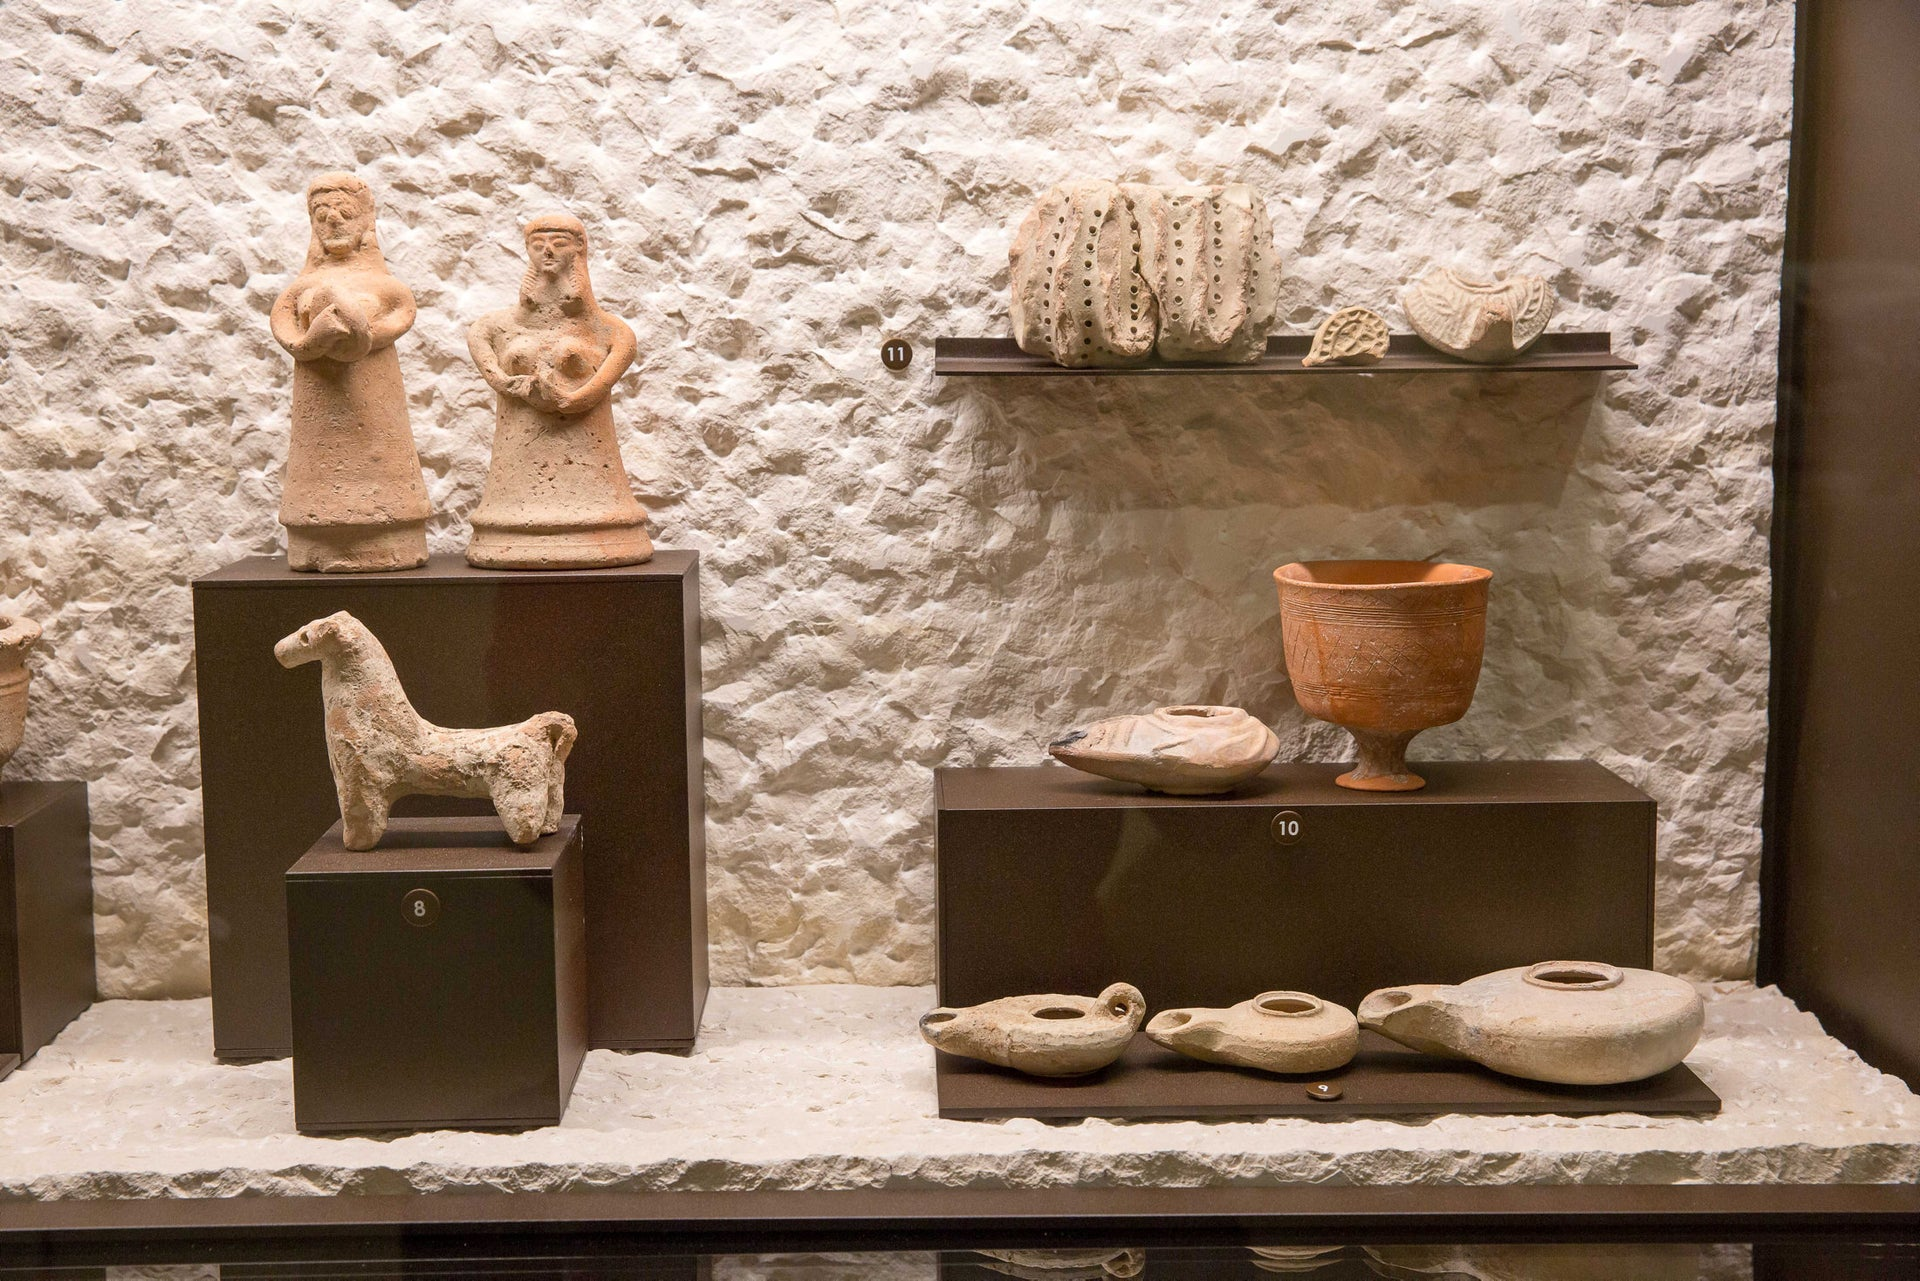 Exhibits in the Terra Sancta Museum. Some have been stored for 100 years and have never been displayed.